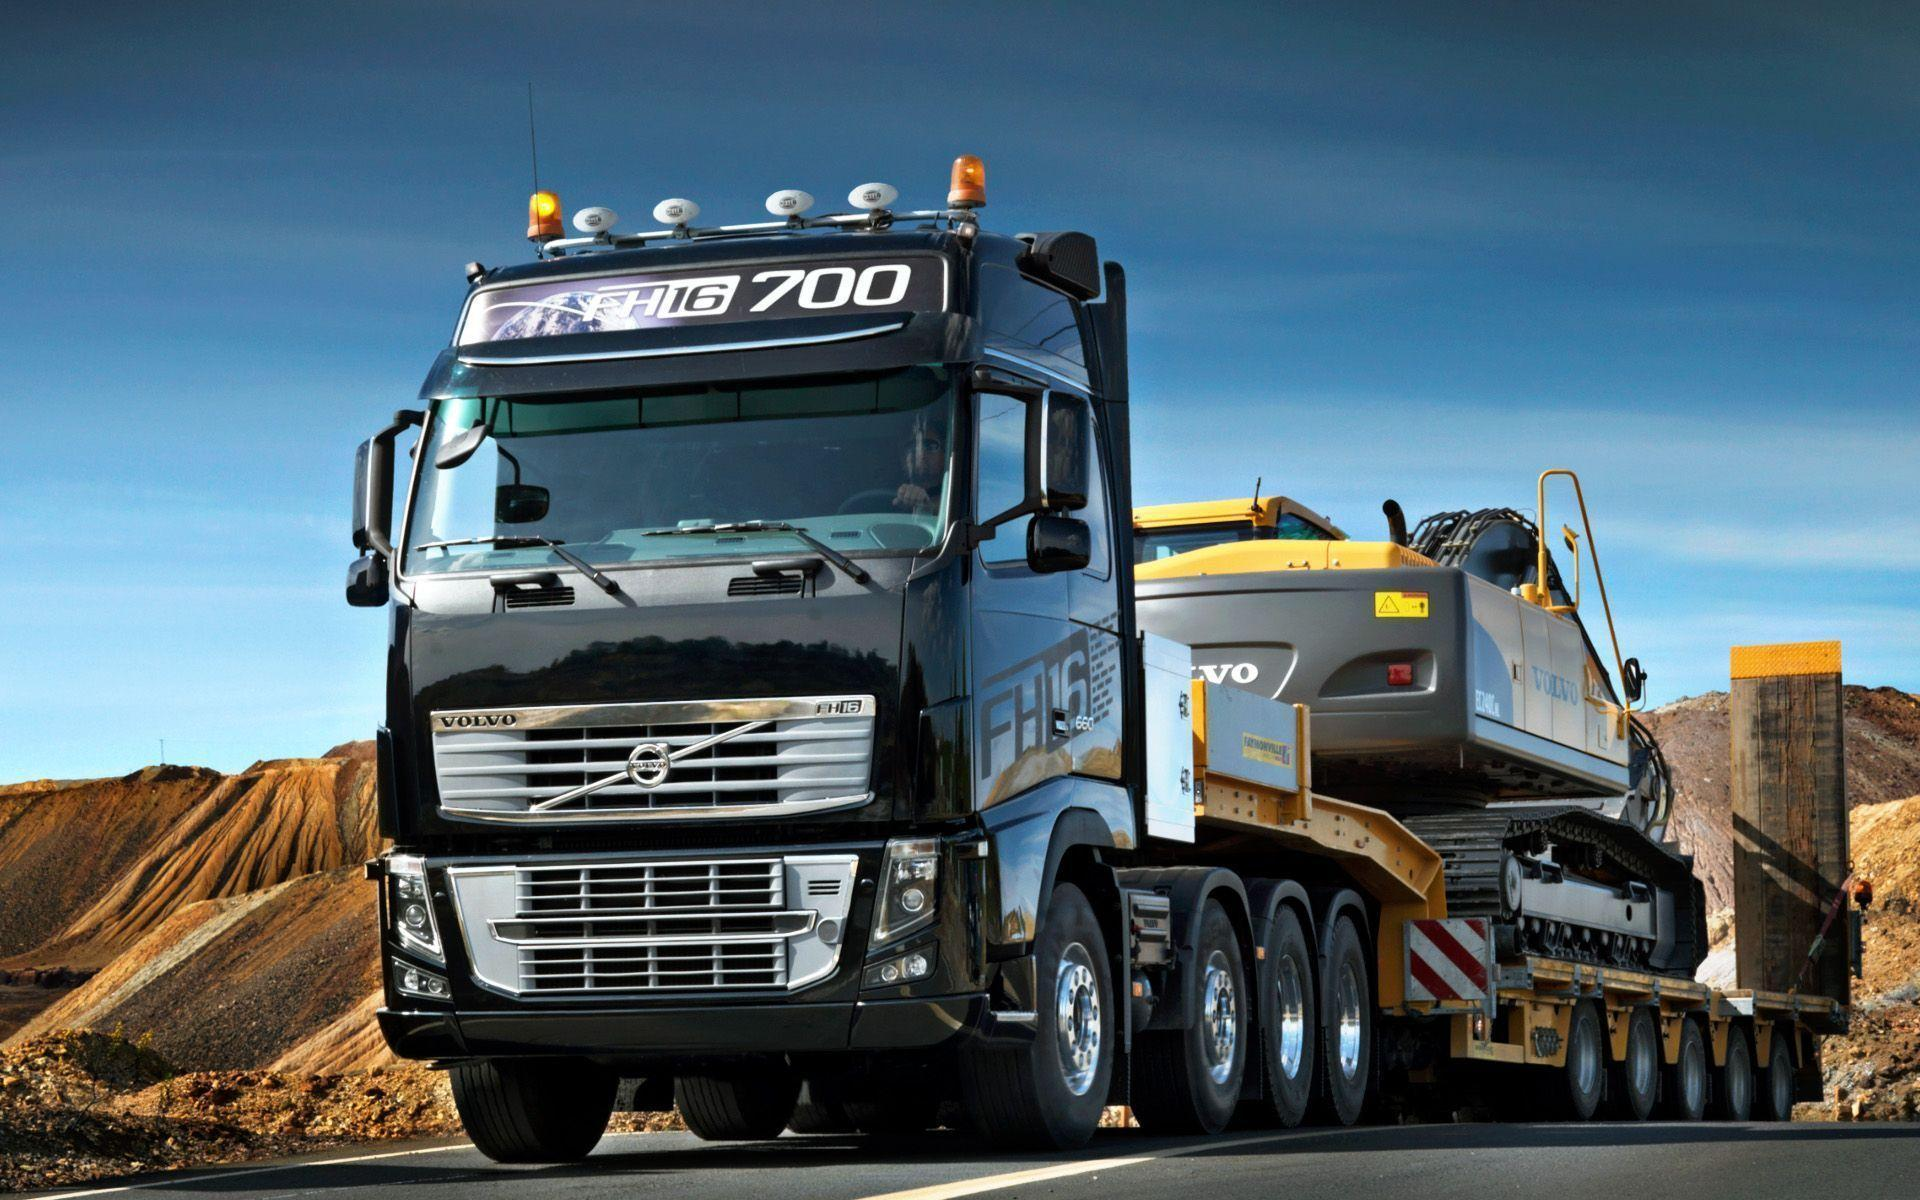 volvo truck wallpapers high resolution. images for u003e volvo truck wallpapers high resolution wallpaper cave